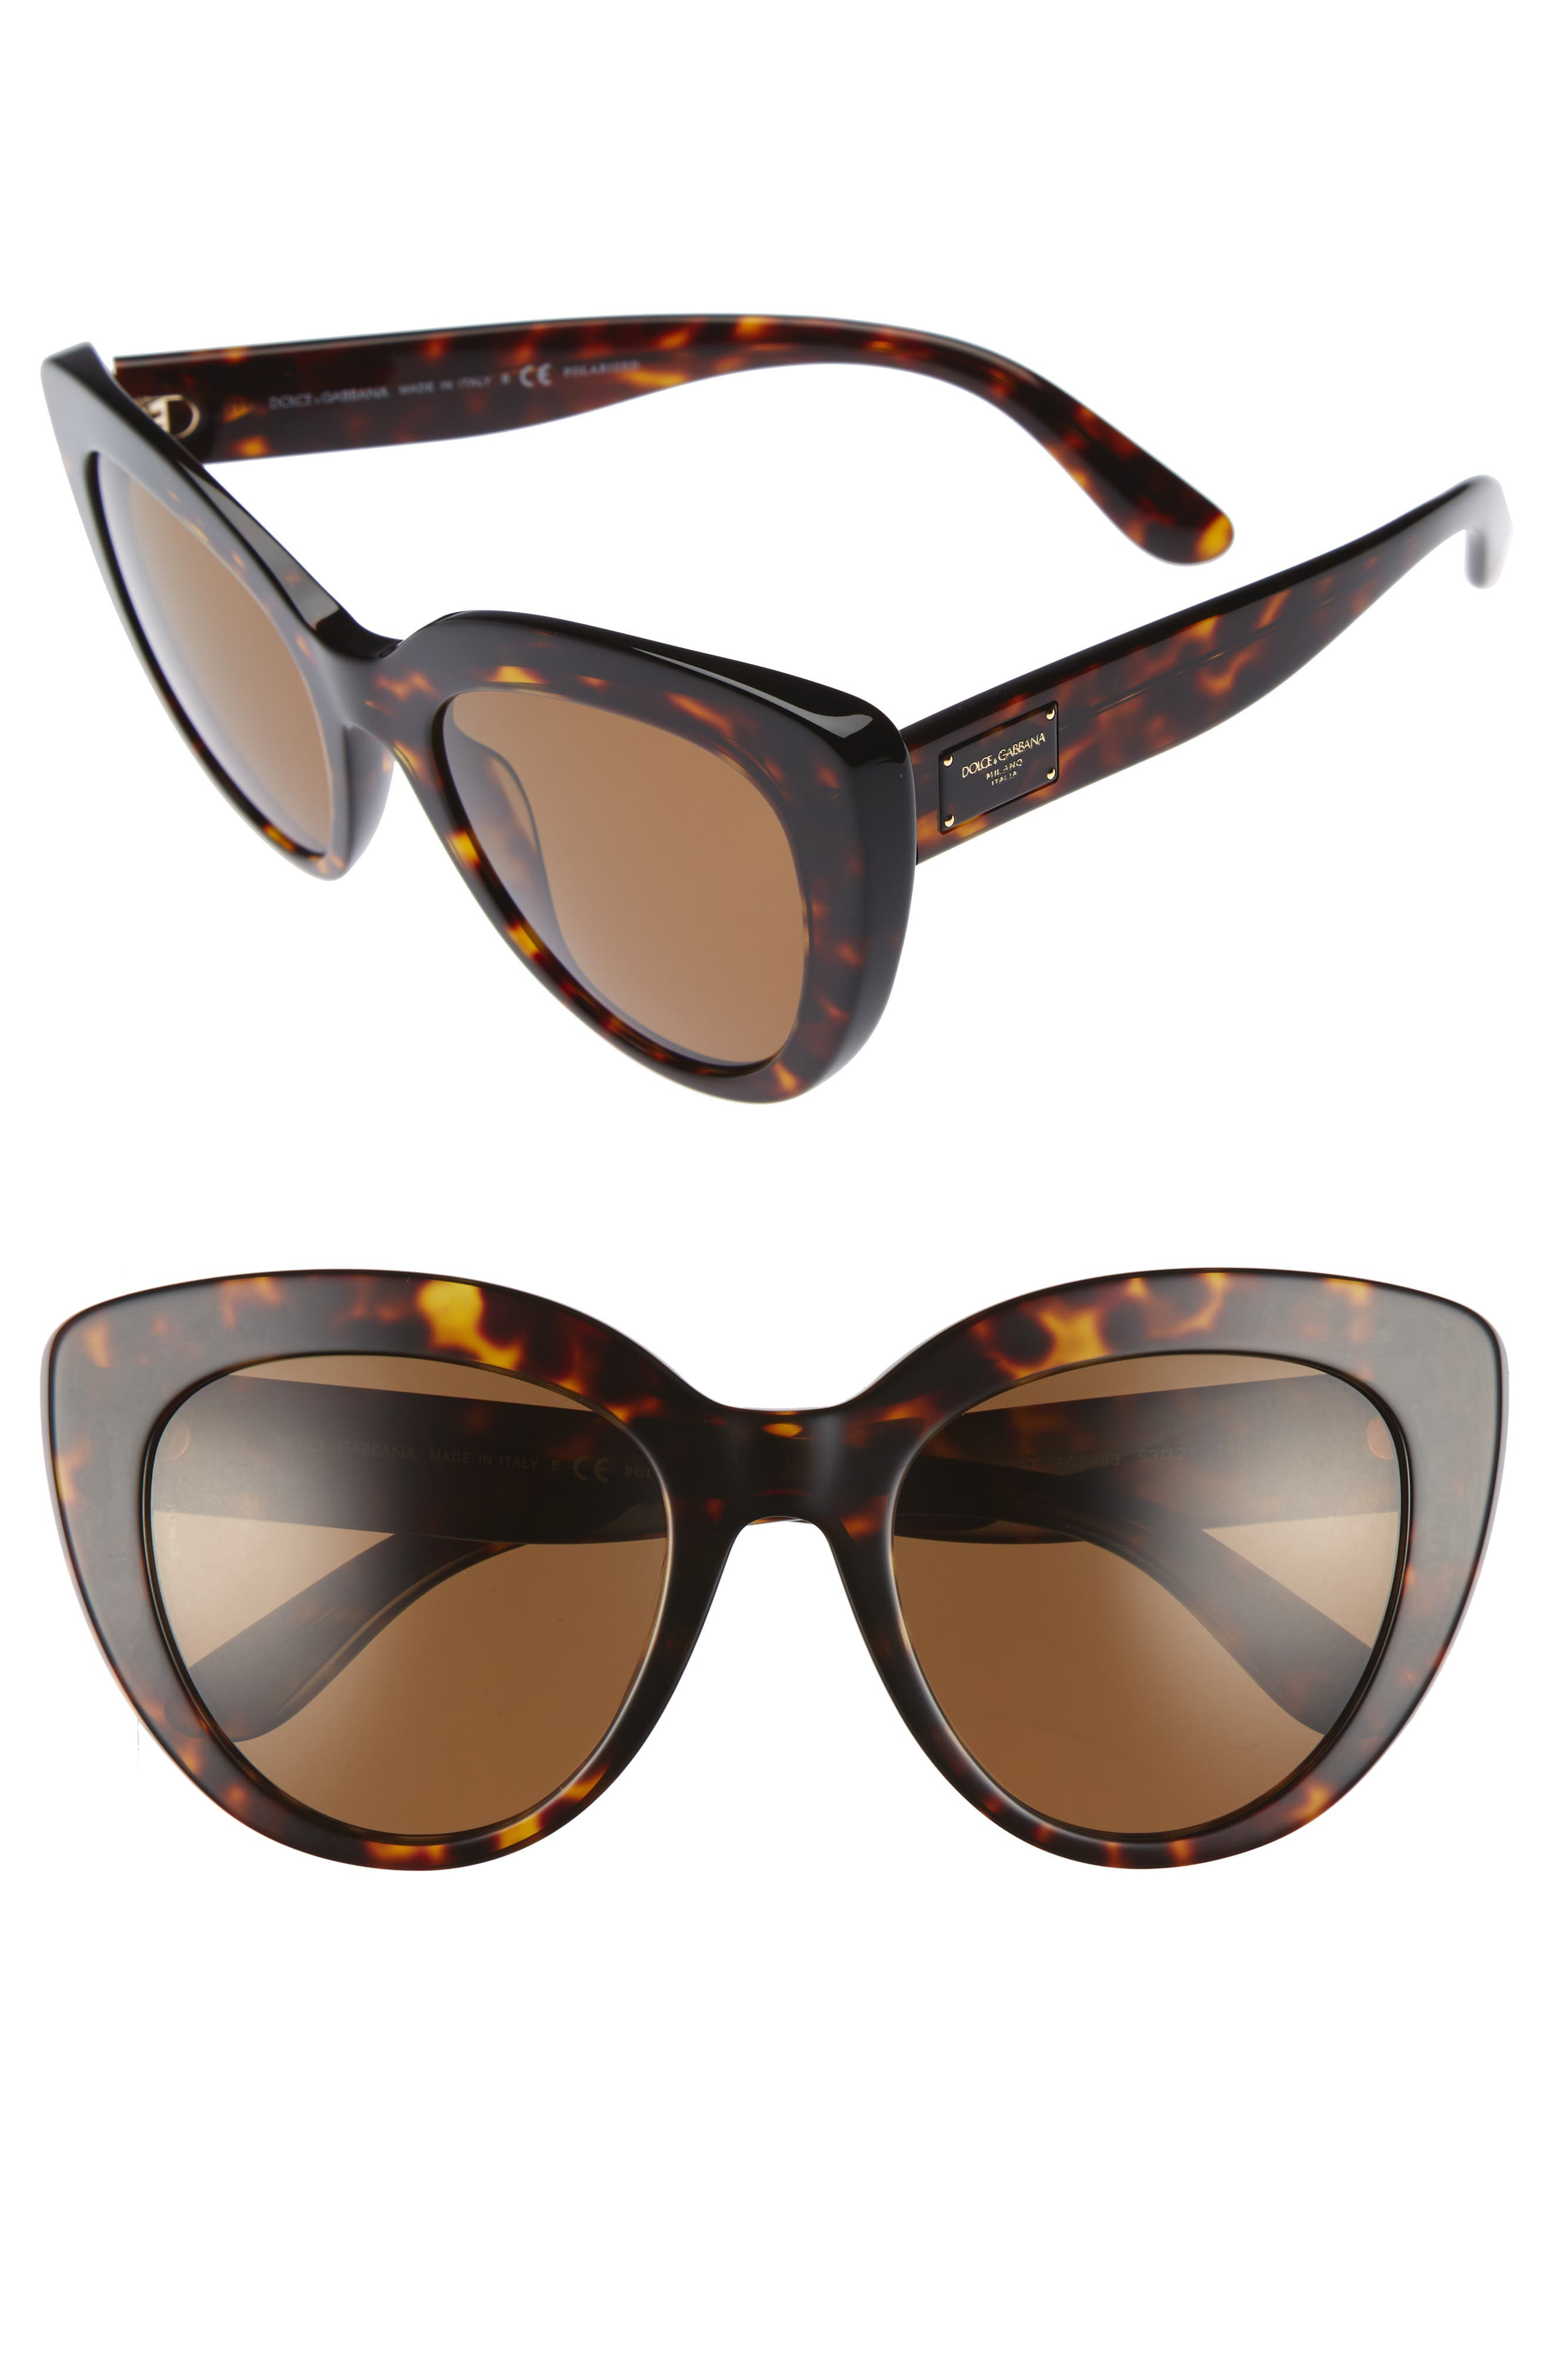 Dolce&Gabbana 53mm Polarized Cat Eye Sunglasses,                             Main thumbnail 1, color,                             Brown/ Havana